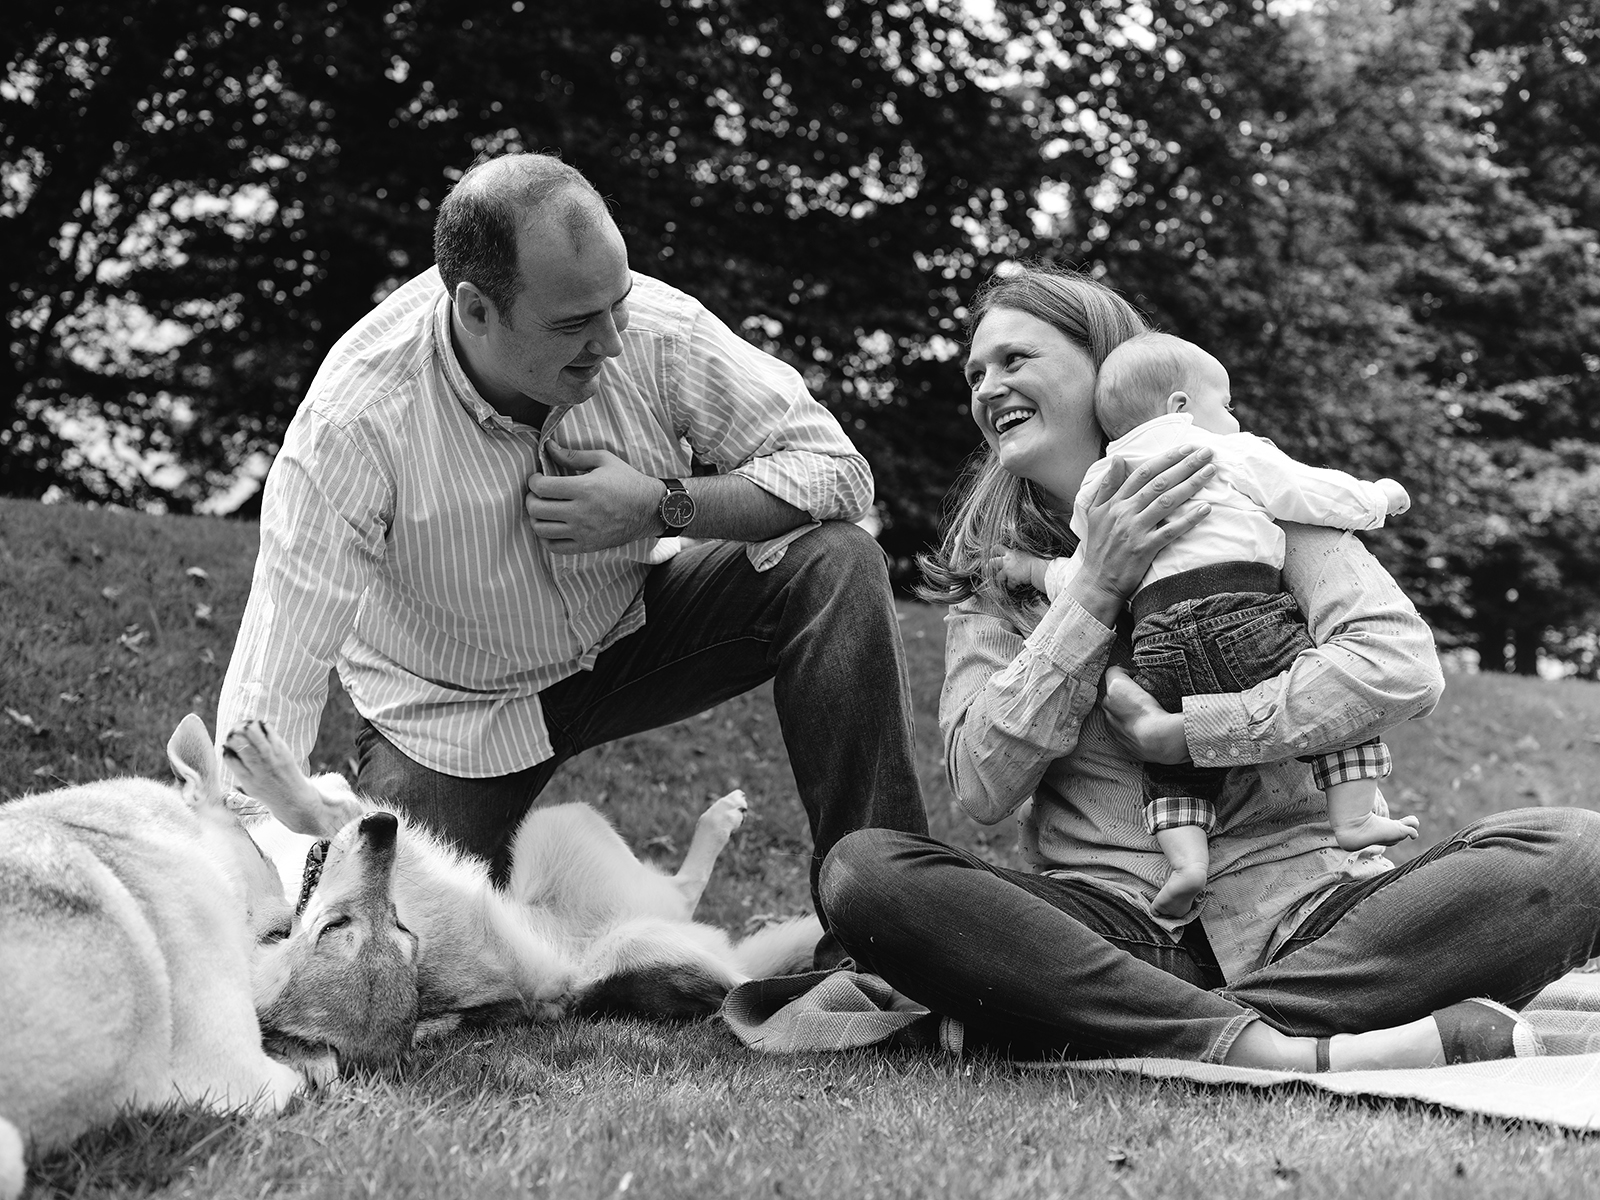 Parents and their newborn child pose with their dogs in the grass